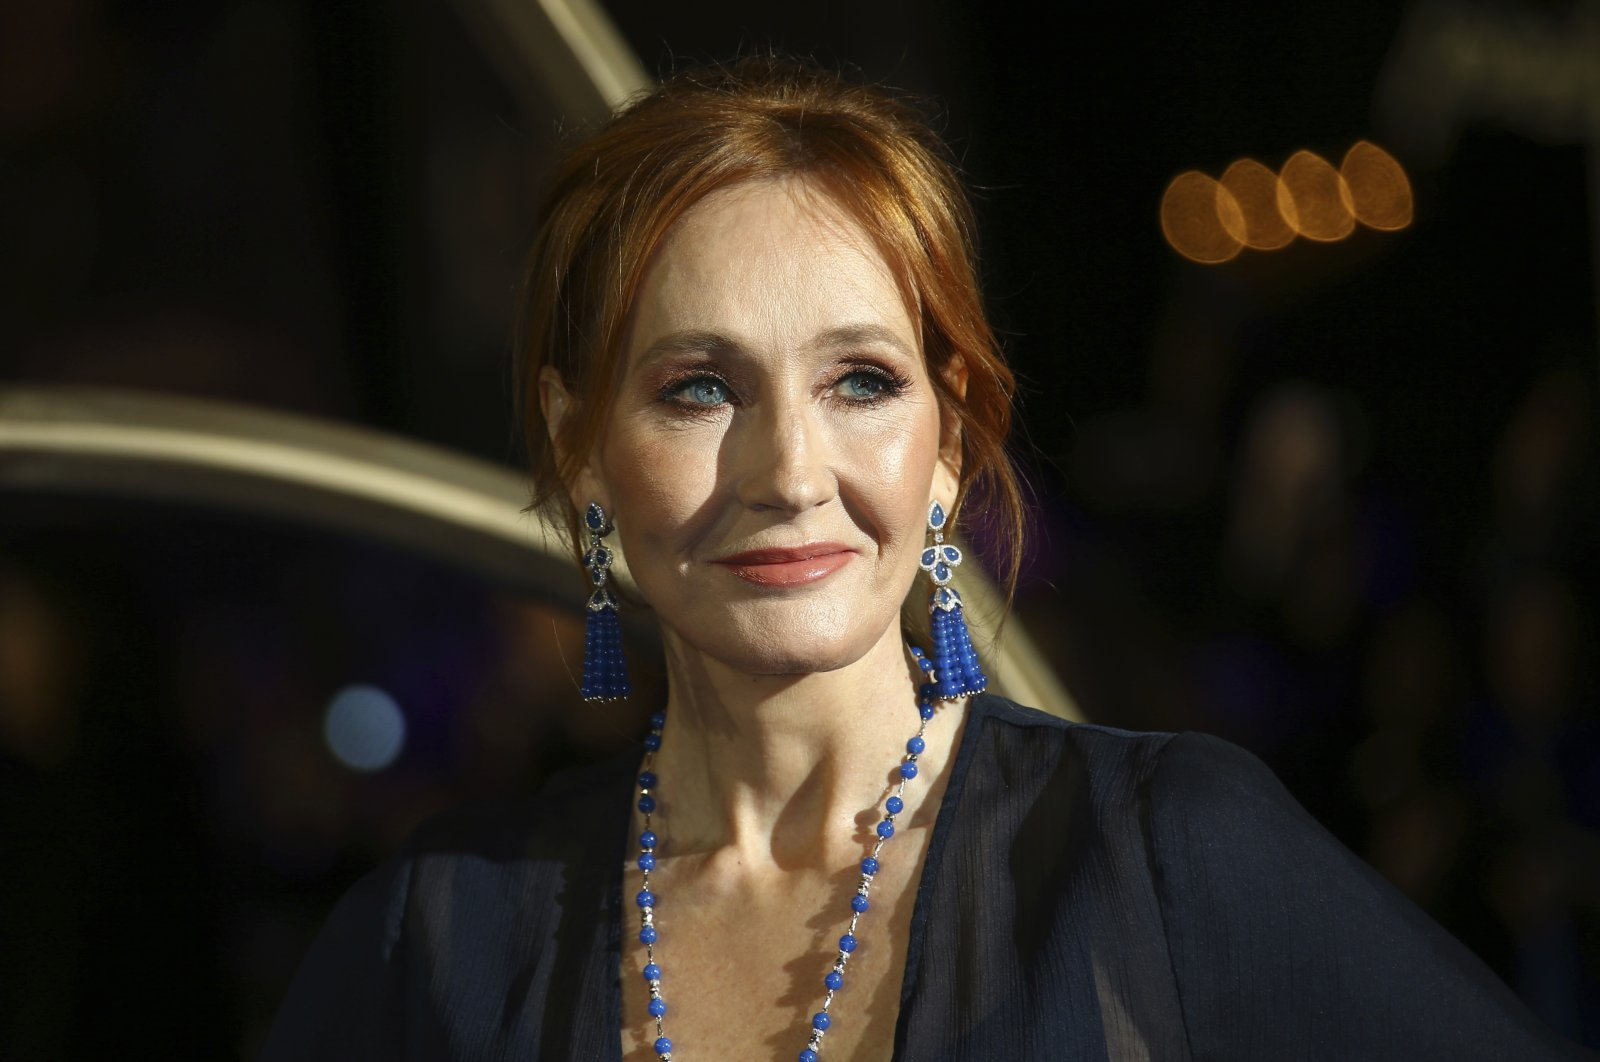 Author J.K. Rowling poses for photographers upon her arrival at the premiere of the film 'Fantastic Beasts: The Crimes of Grindelwald', London, Nov. 13, 2018. (AP PHOTO)